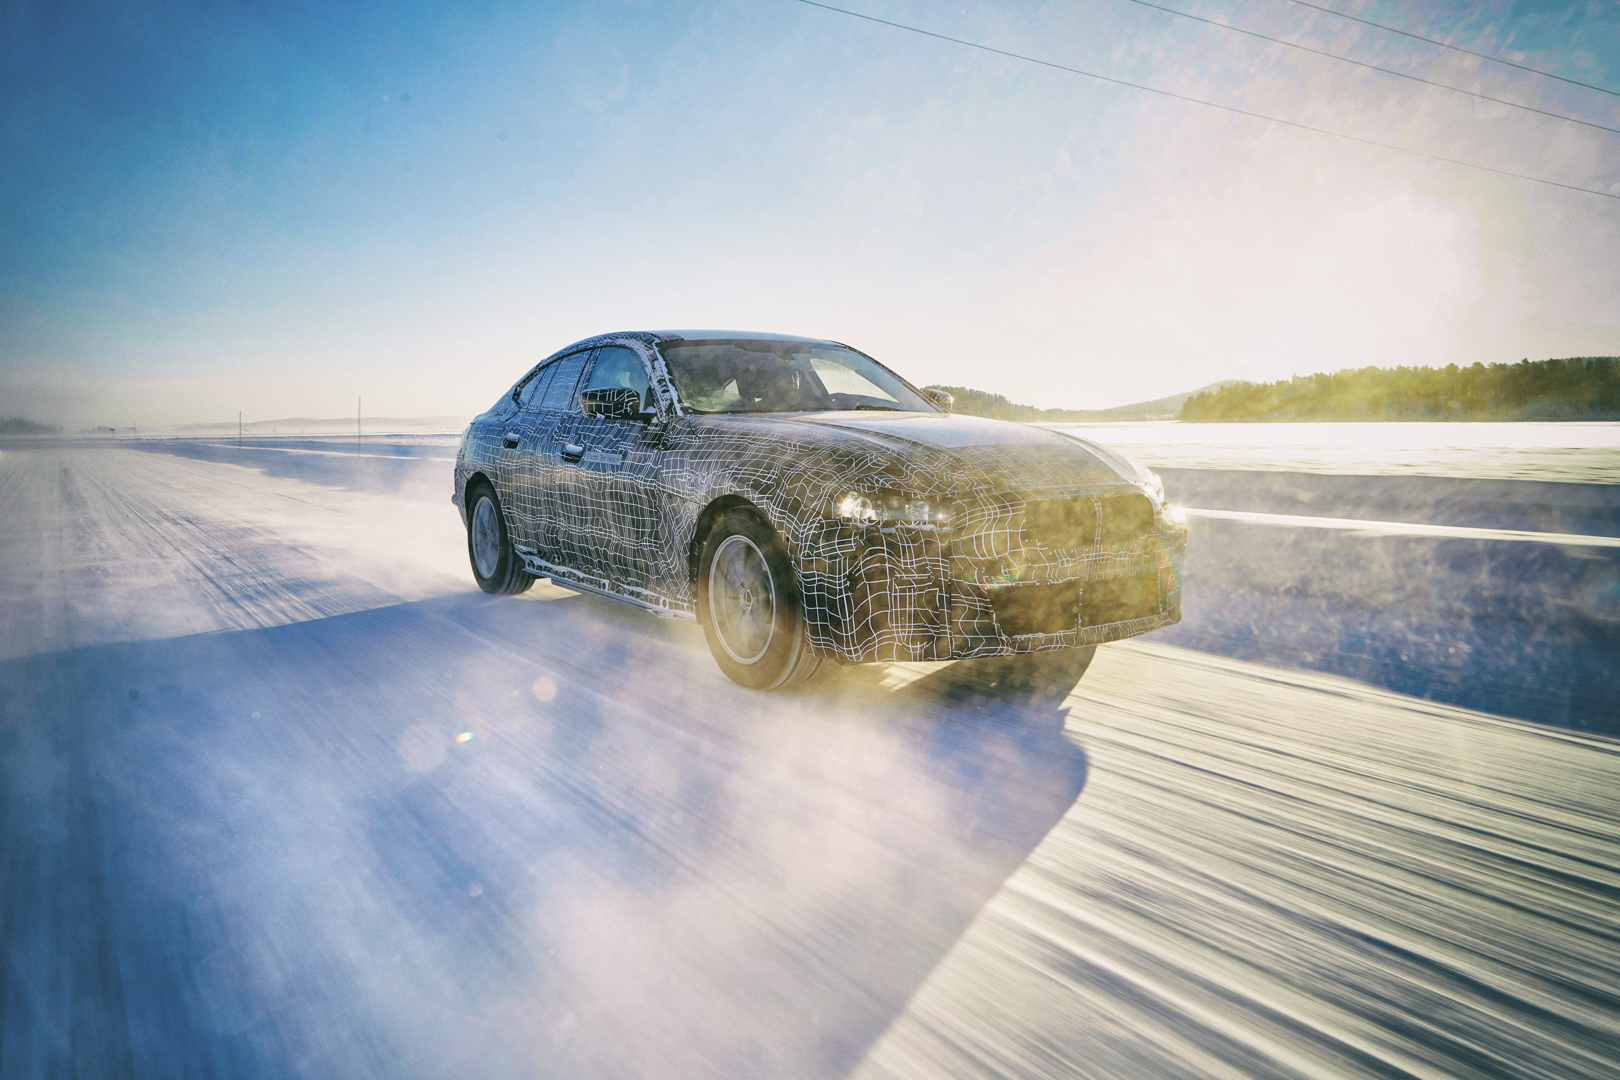 Upcoming BMW i-models undergo extreme weather testing